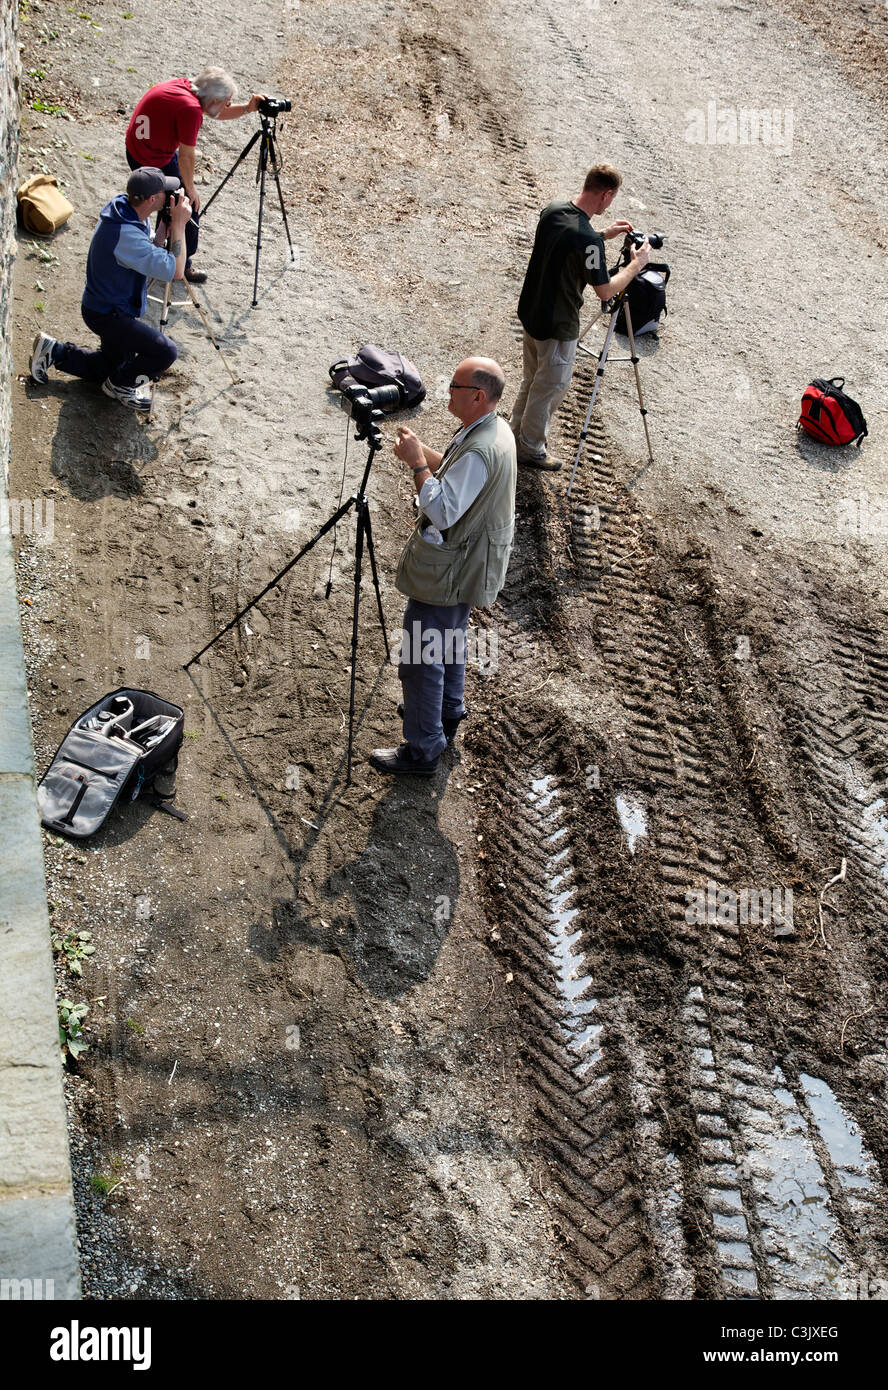 Amateur photographers taking pictures - Stock Image